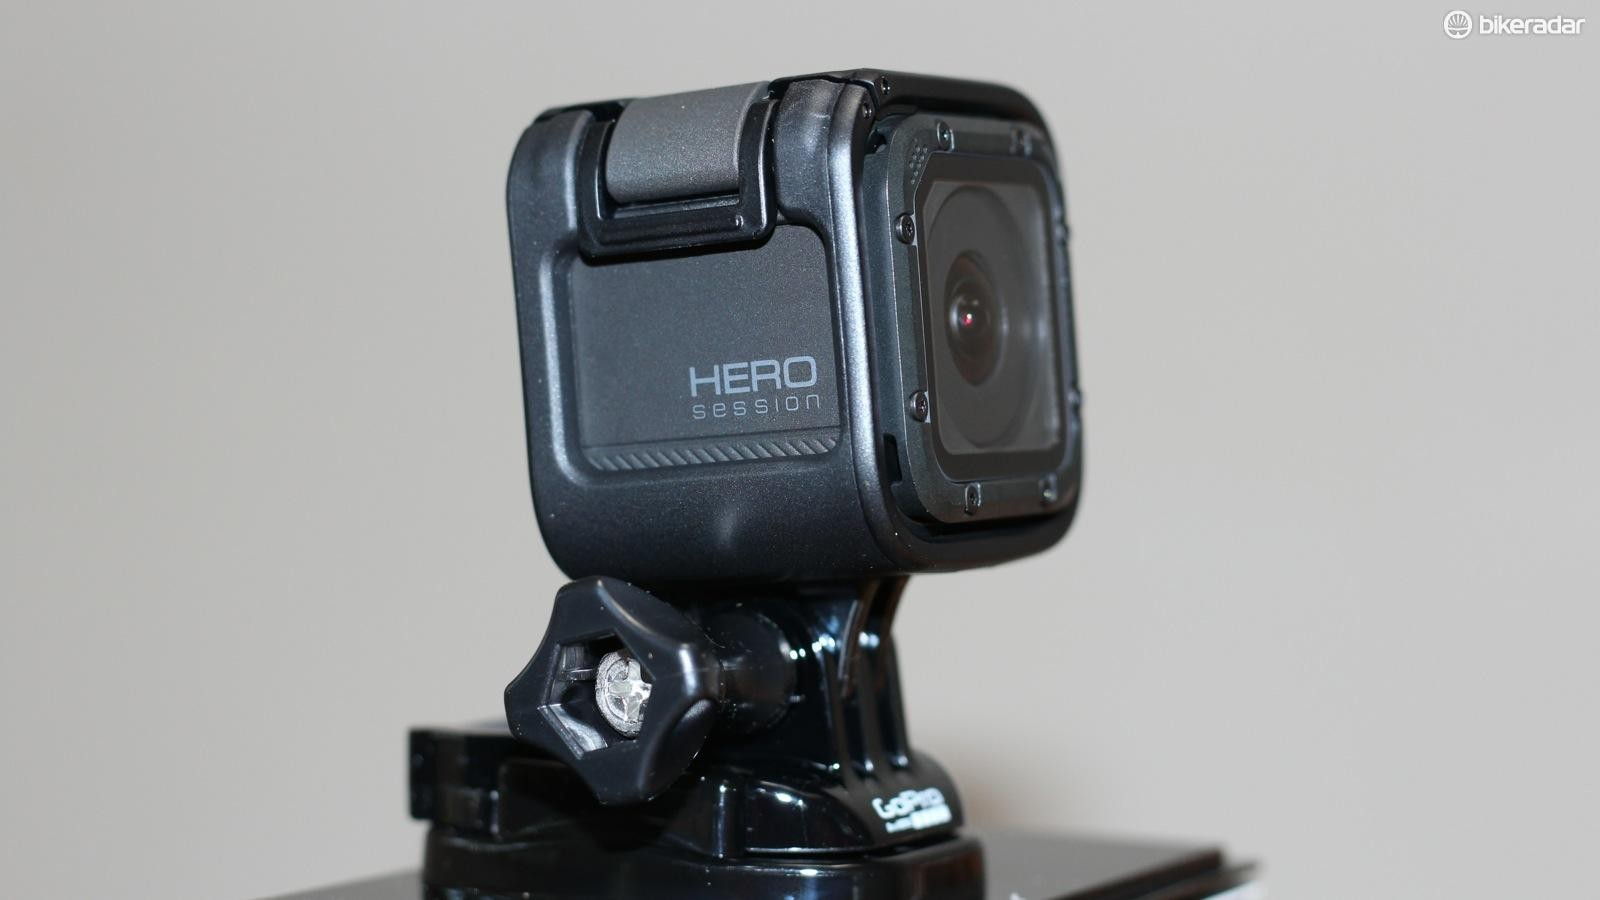 The GoPro Hero Session is a compact, one-button camera